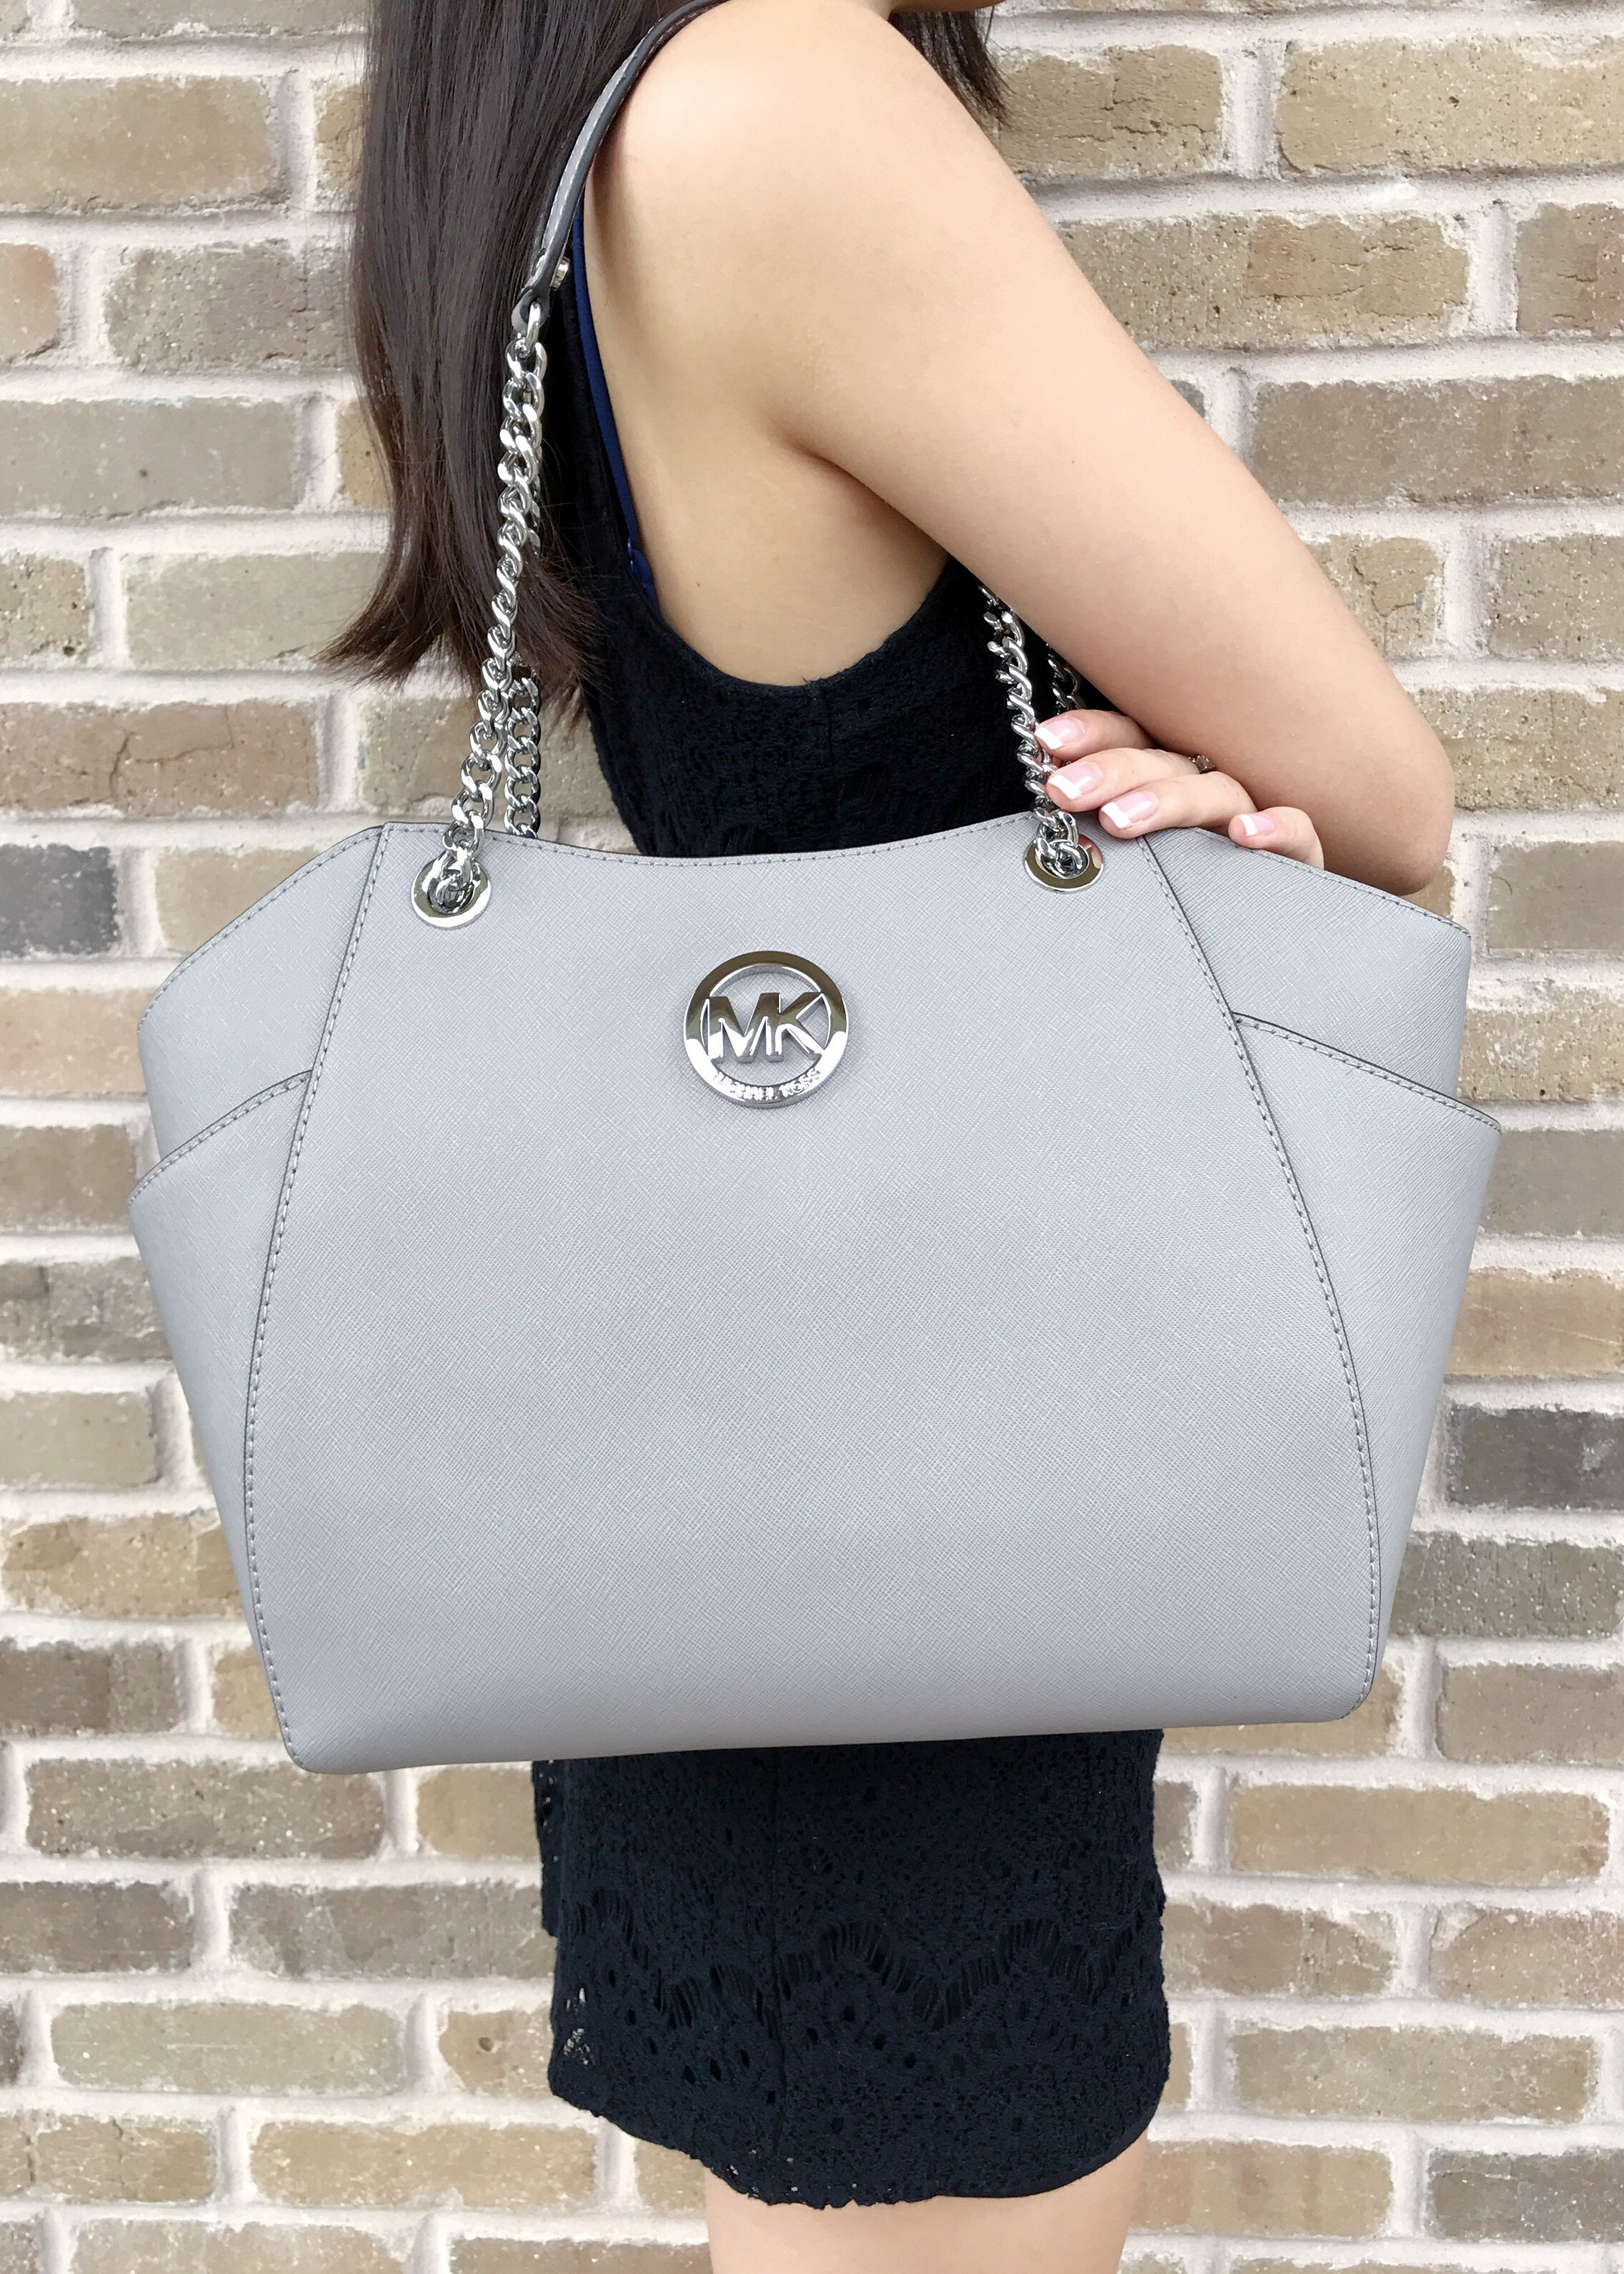 ... where to buy nwt michael kors grey saffiano leather jet set travel chain  shoulder tote bag f790abb8af987